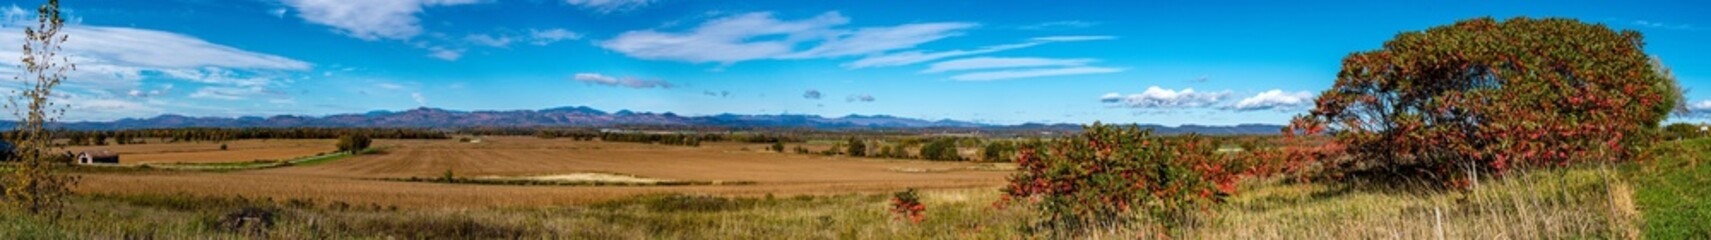 Panoramic view of a Vermont valley with the Adirondack Mountains in the background